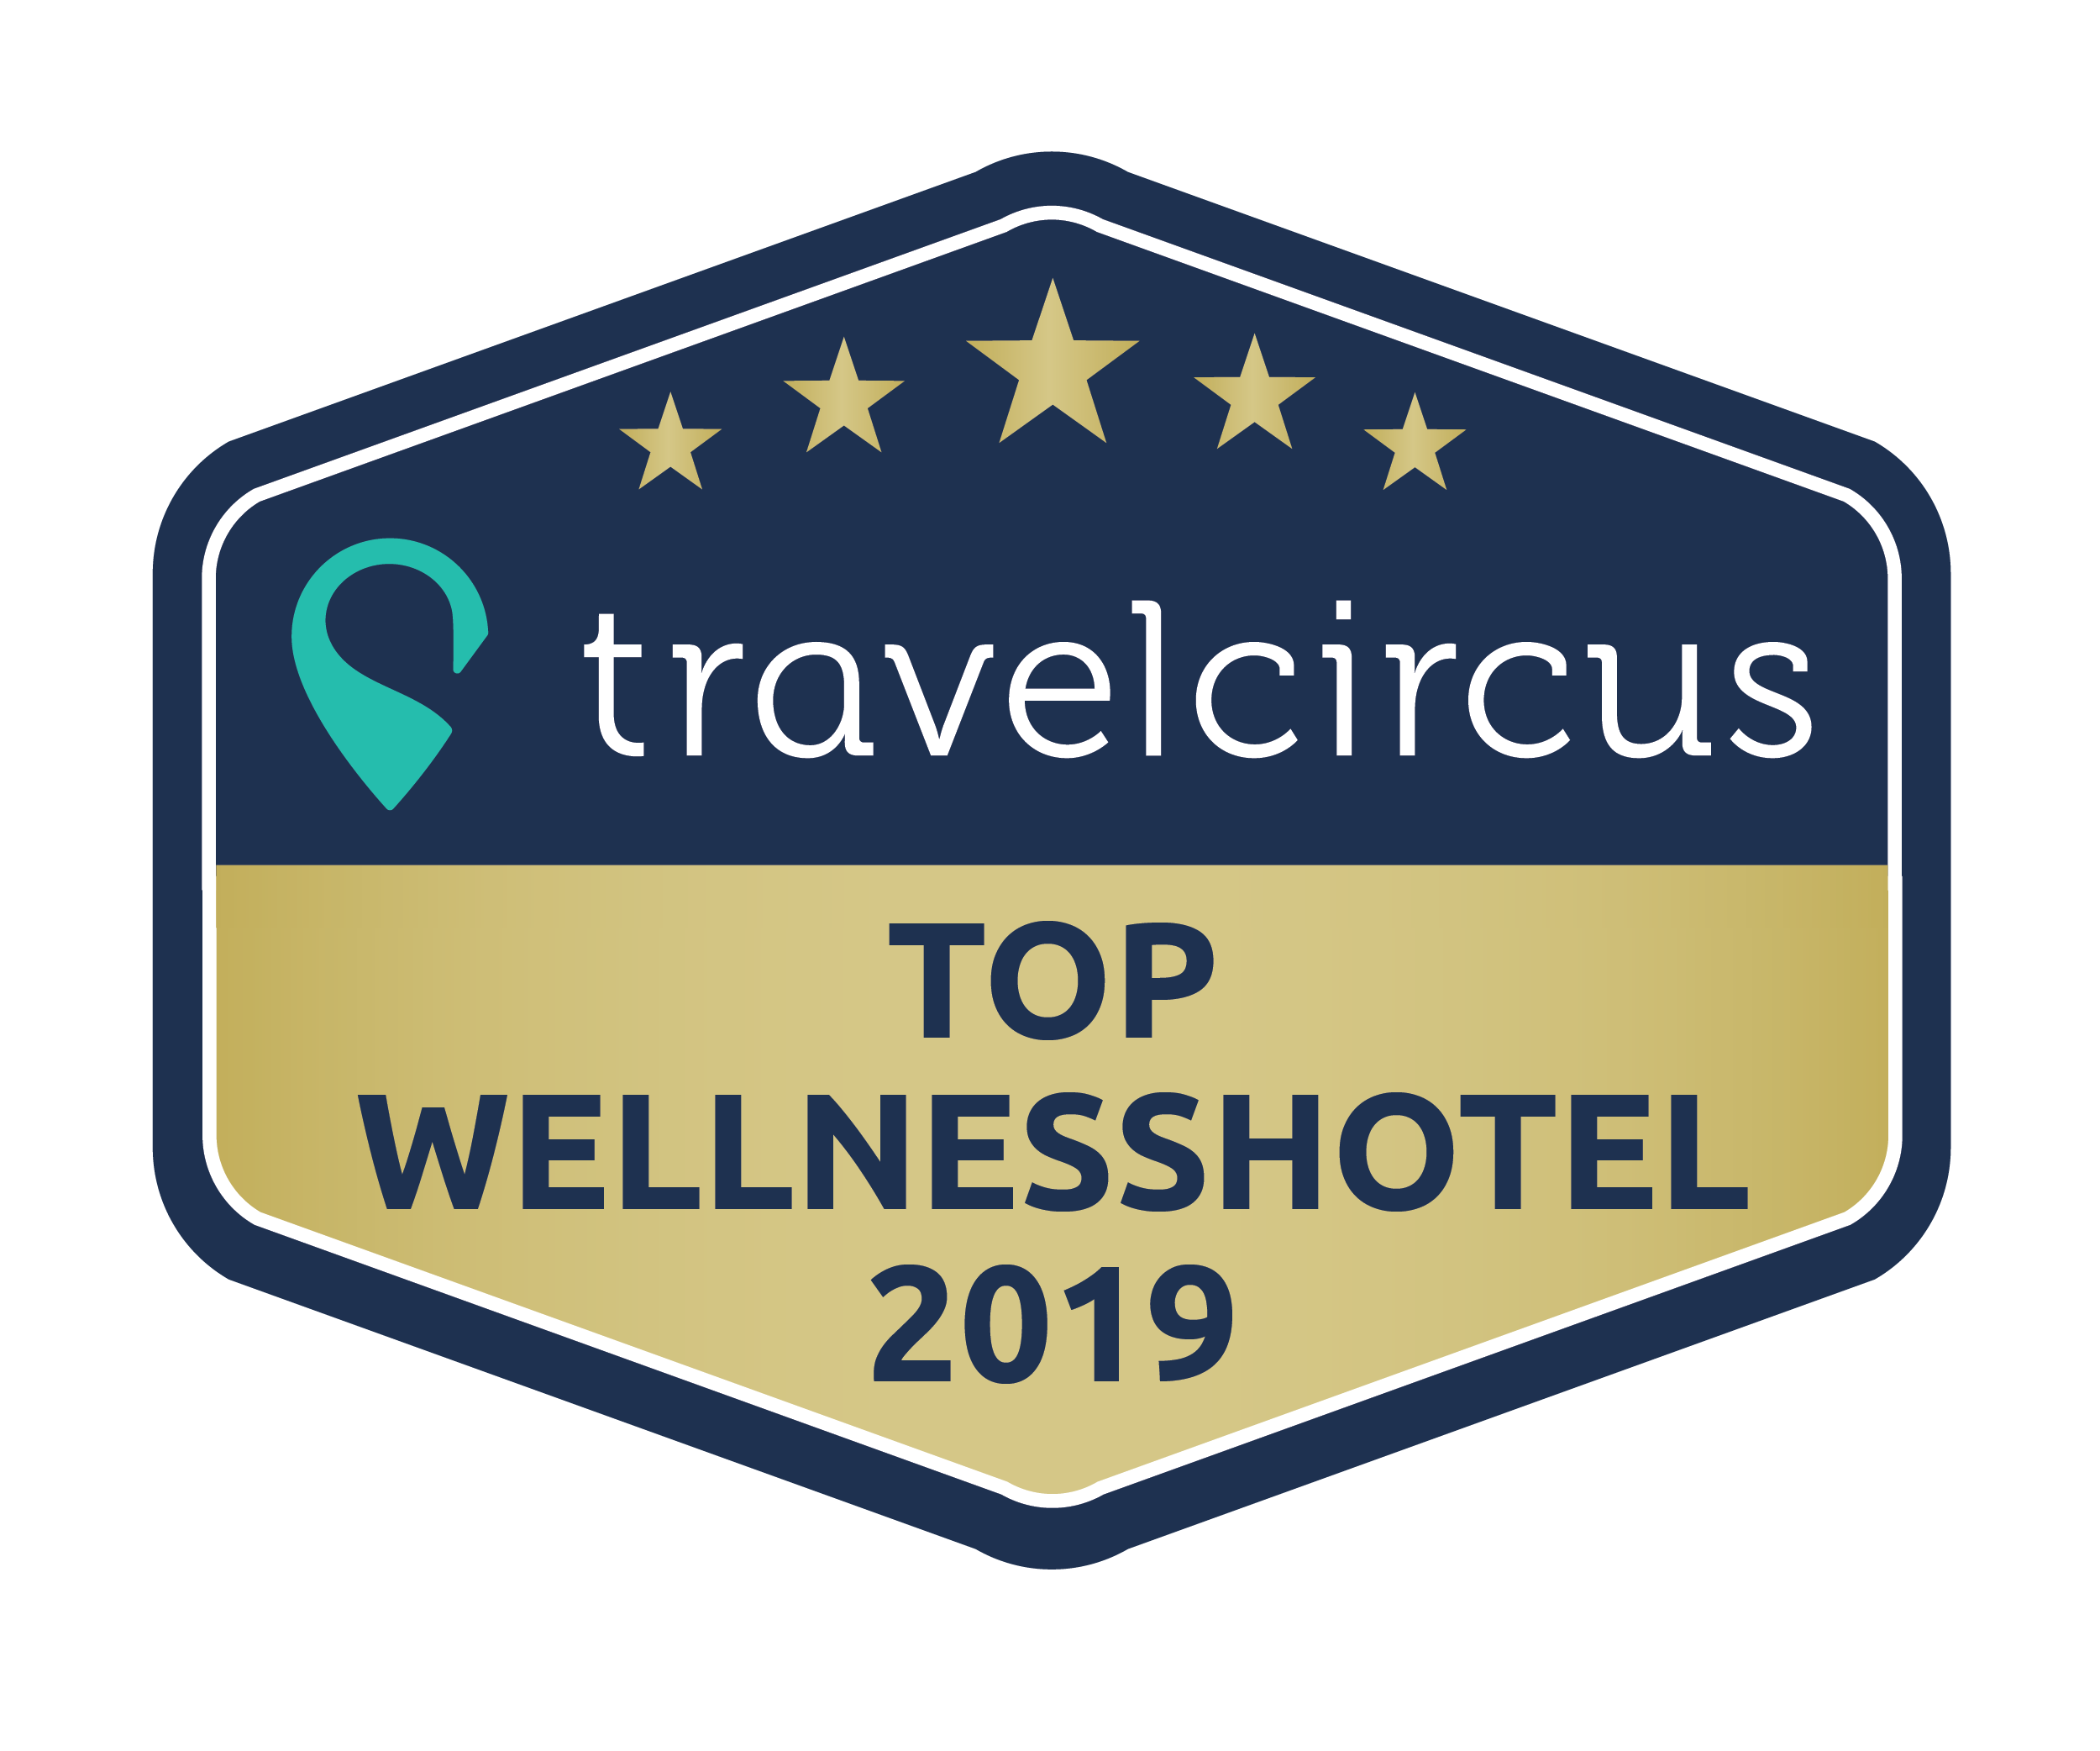 Travelcircus Top Wellnesshotel 2019